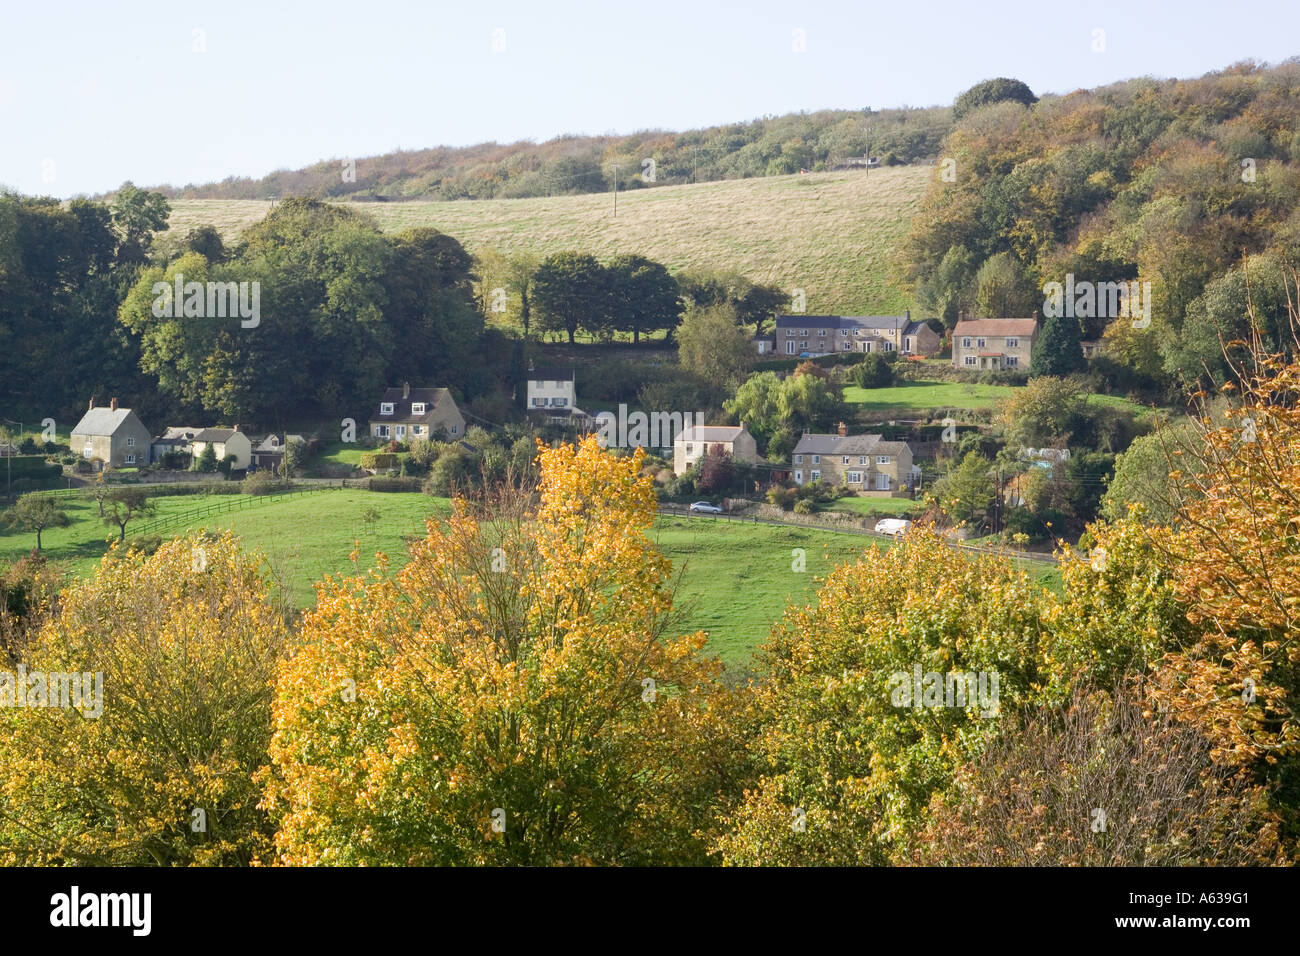 Autumn in the Cotswold village of Ruscombe in the Stroud Valleys Gloucestershire - Stock Image